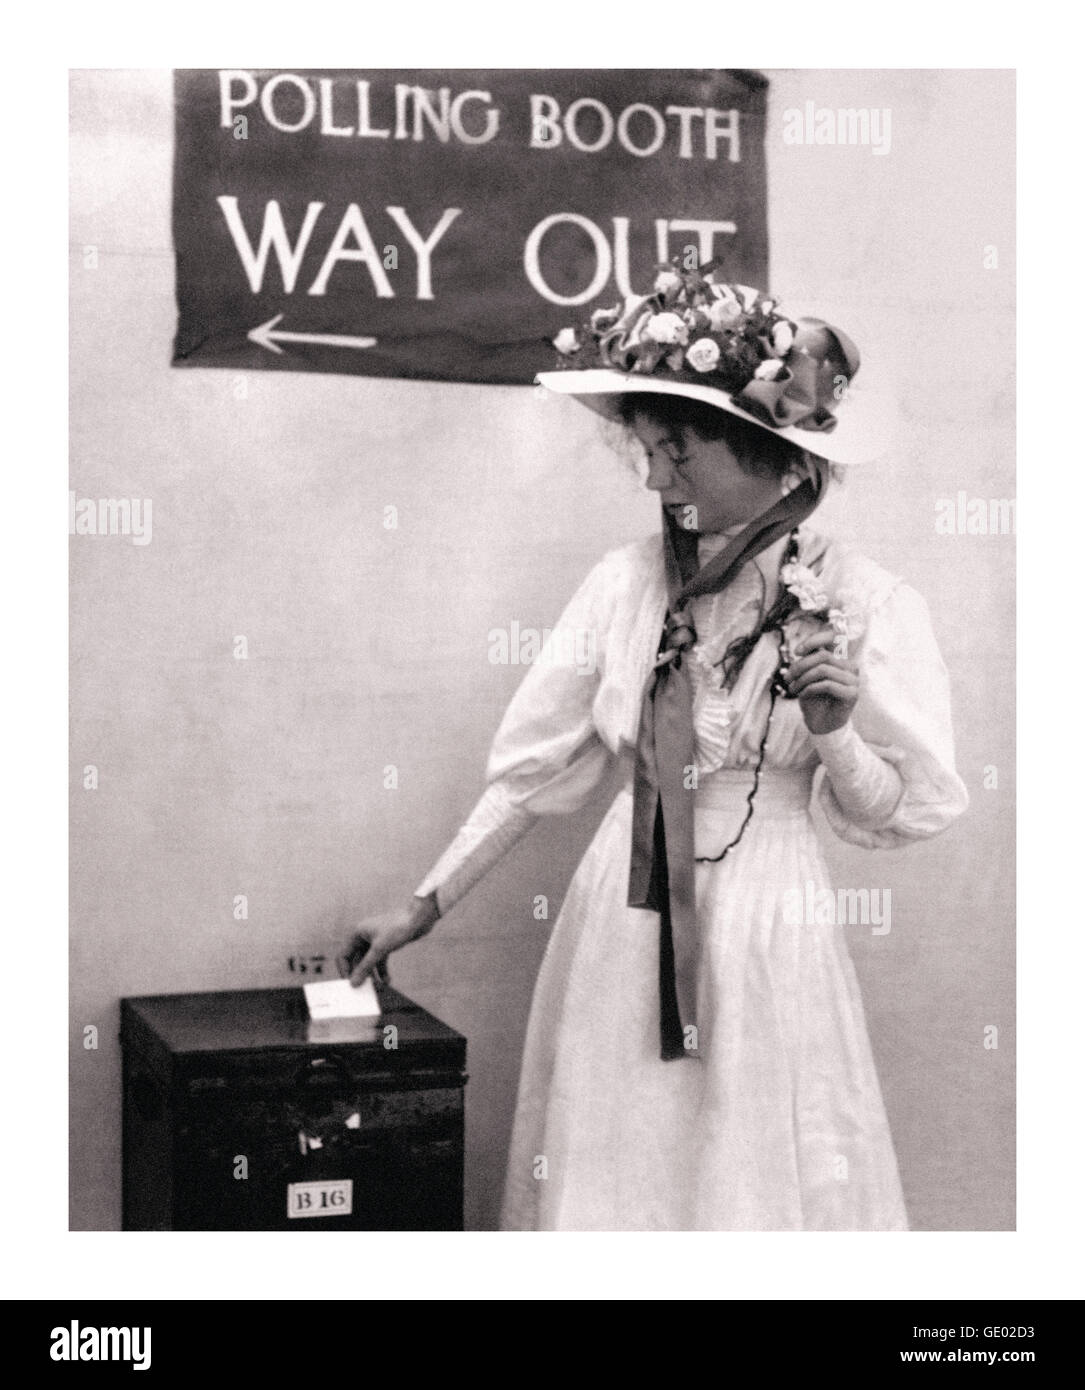 Suffragette movement Emmeline Pankhurst in a polling booth circa 1910. She was a motivational leader of the movement - Stock Image